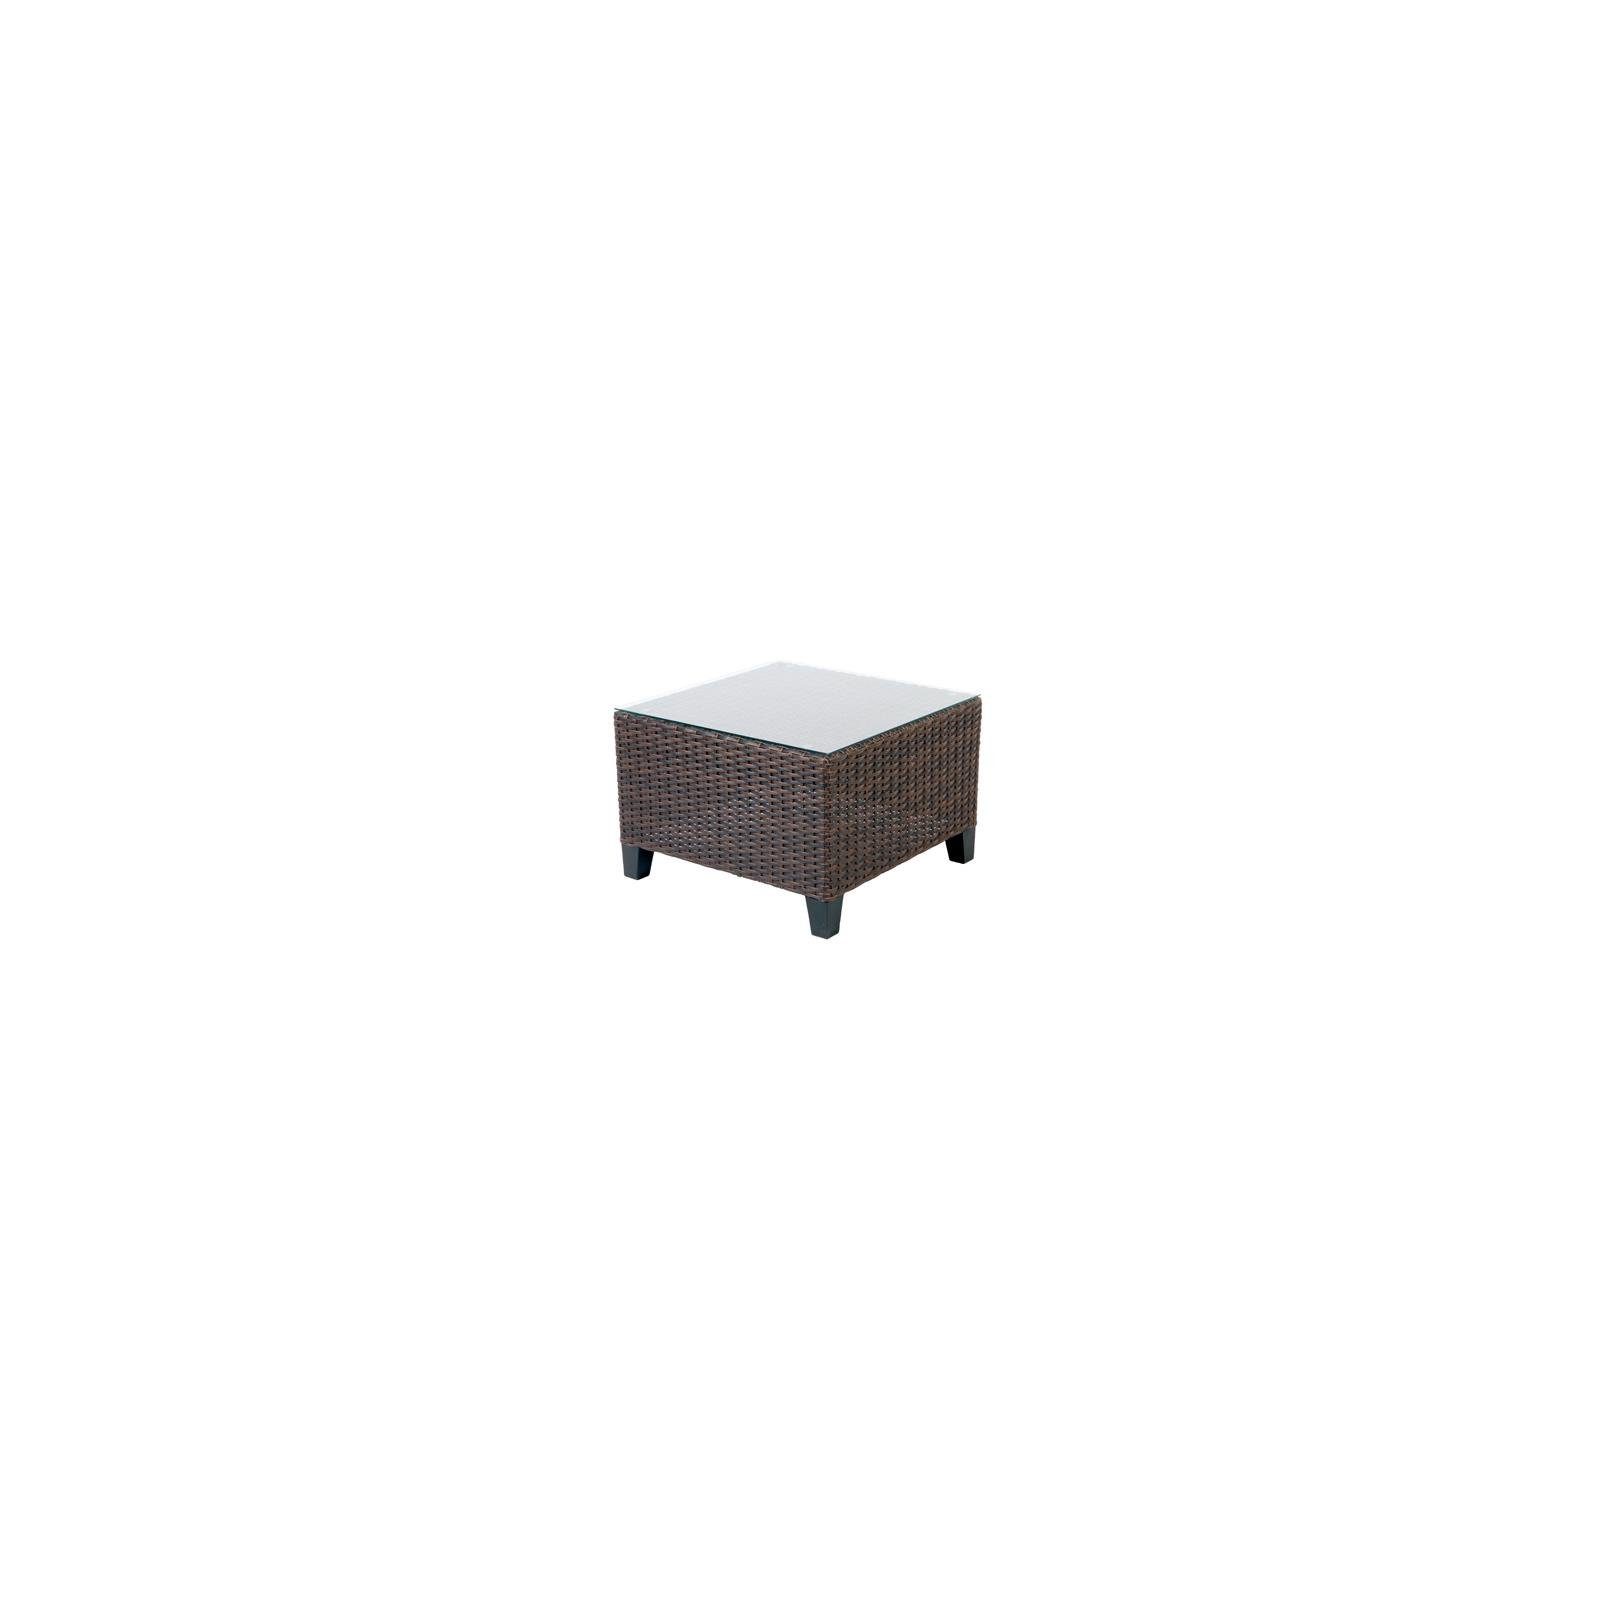 LETRIGHT INDUSTRIAL 710.086.017 Coffee Table